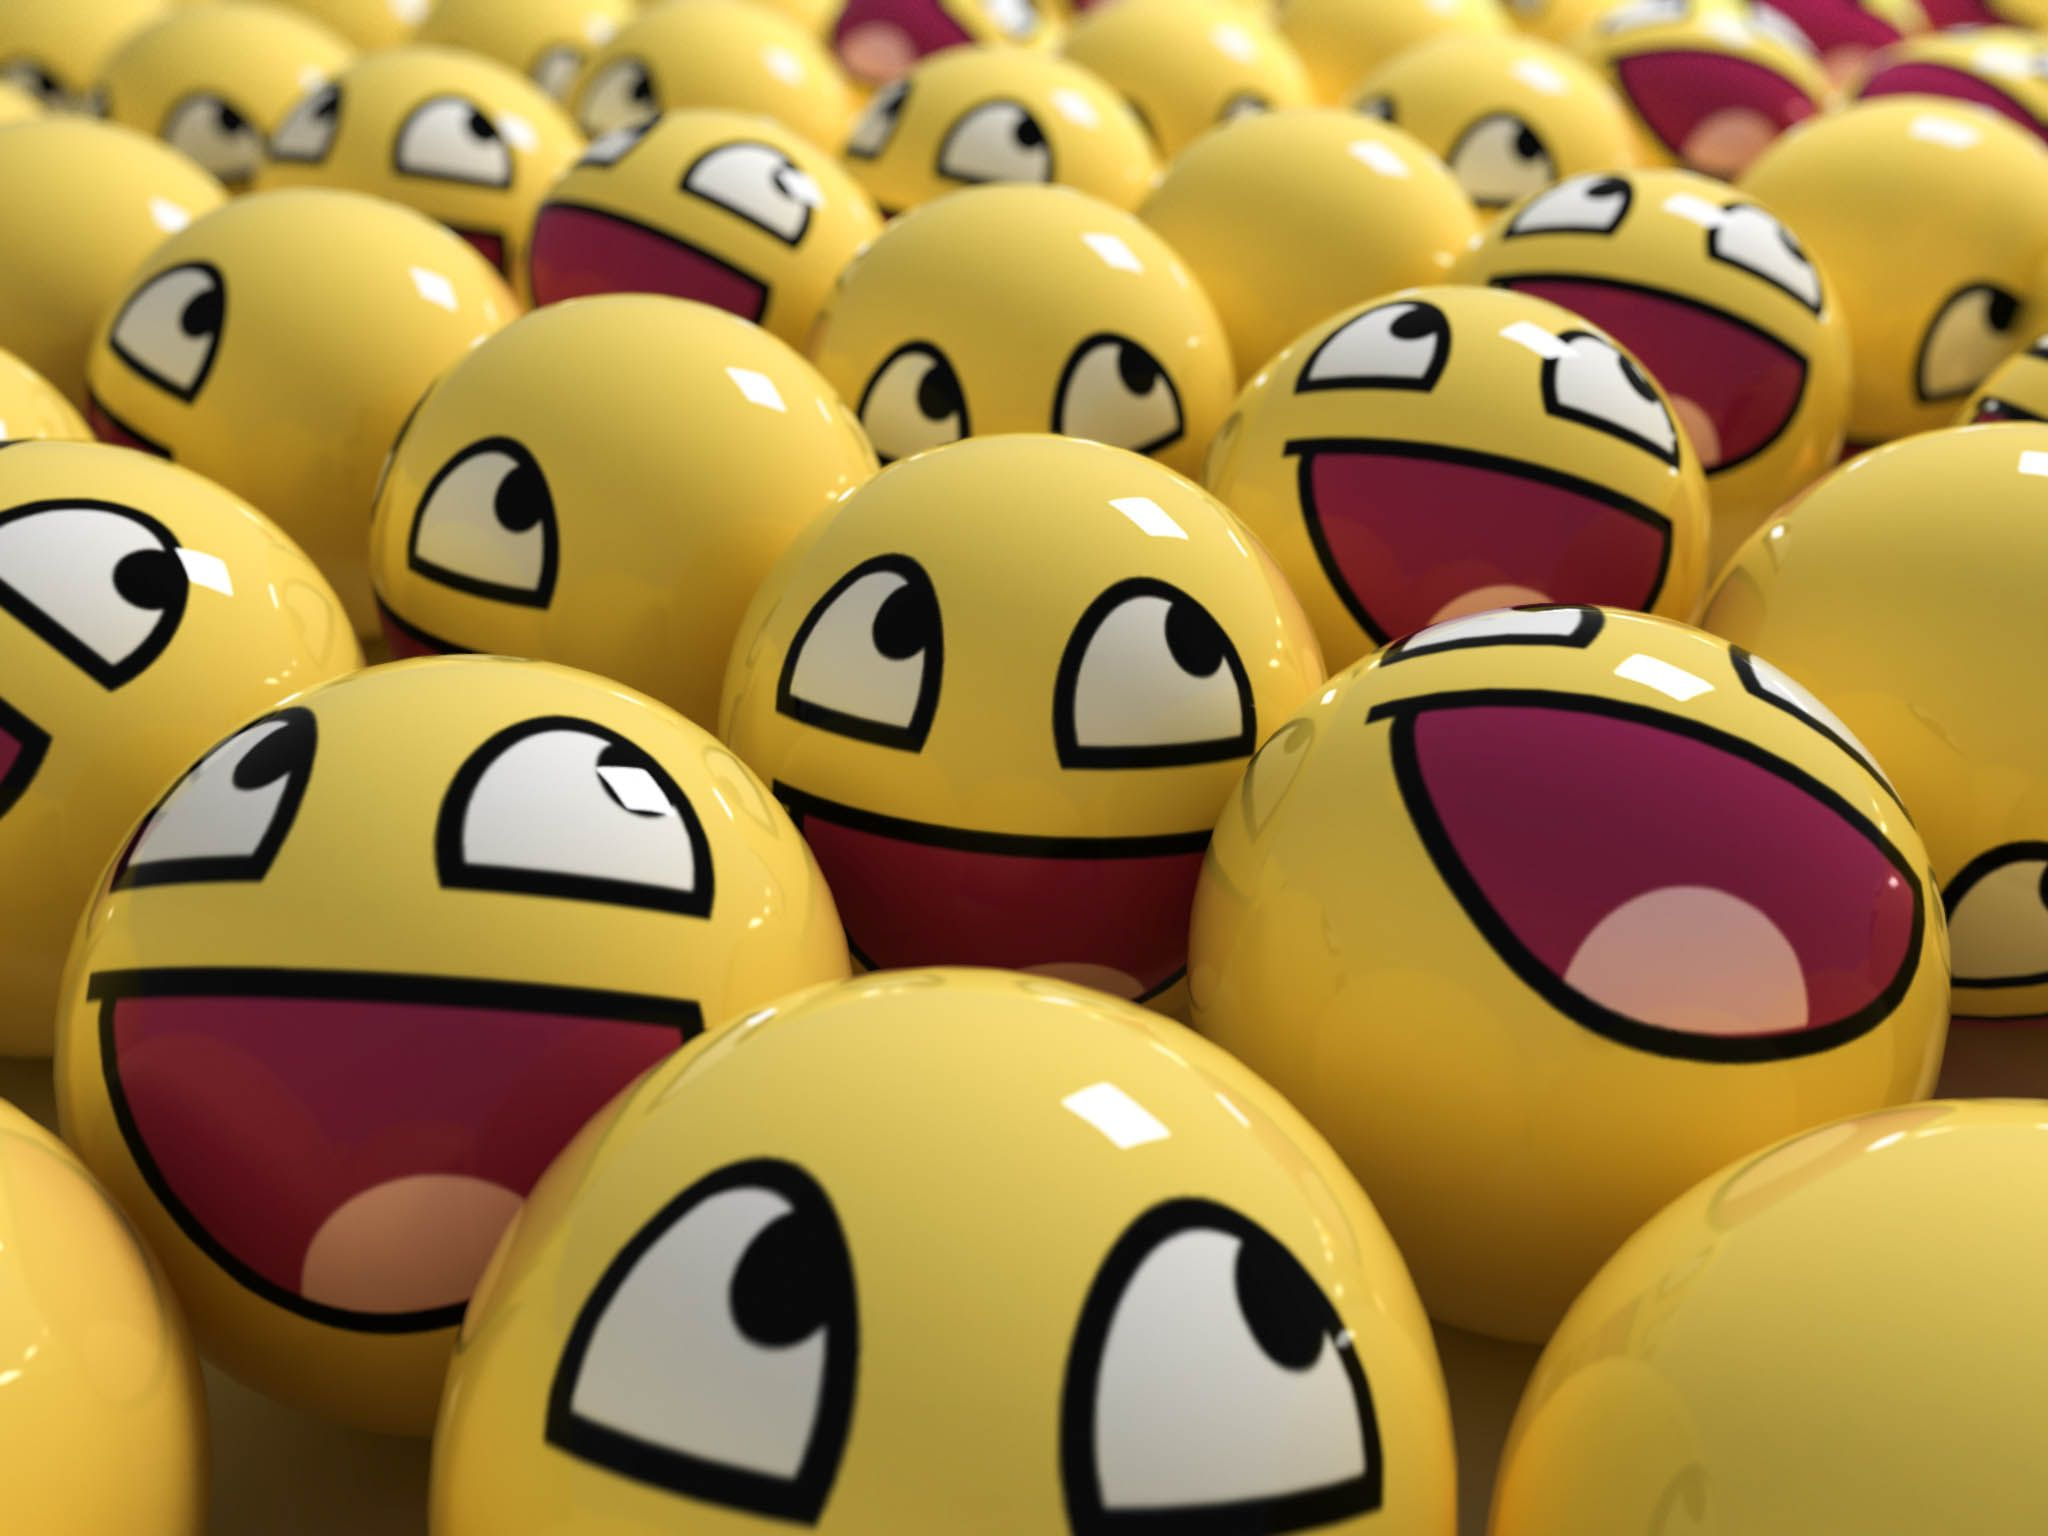 Smiley Beautiful Hd Wallpapers High Definition Smiley